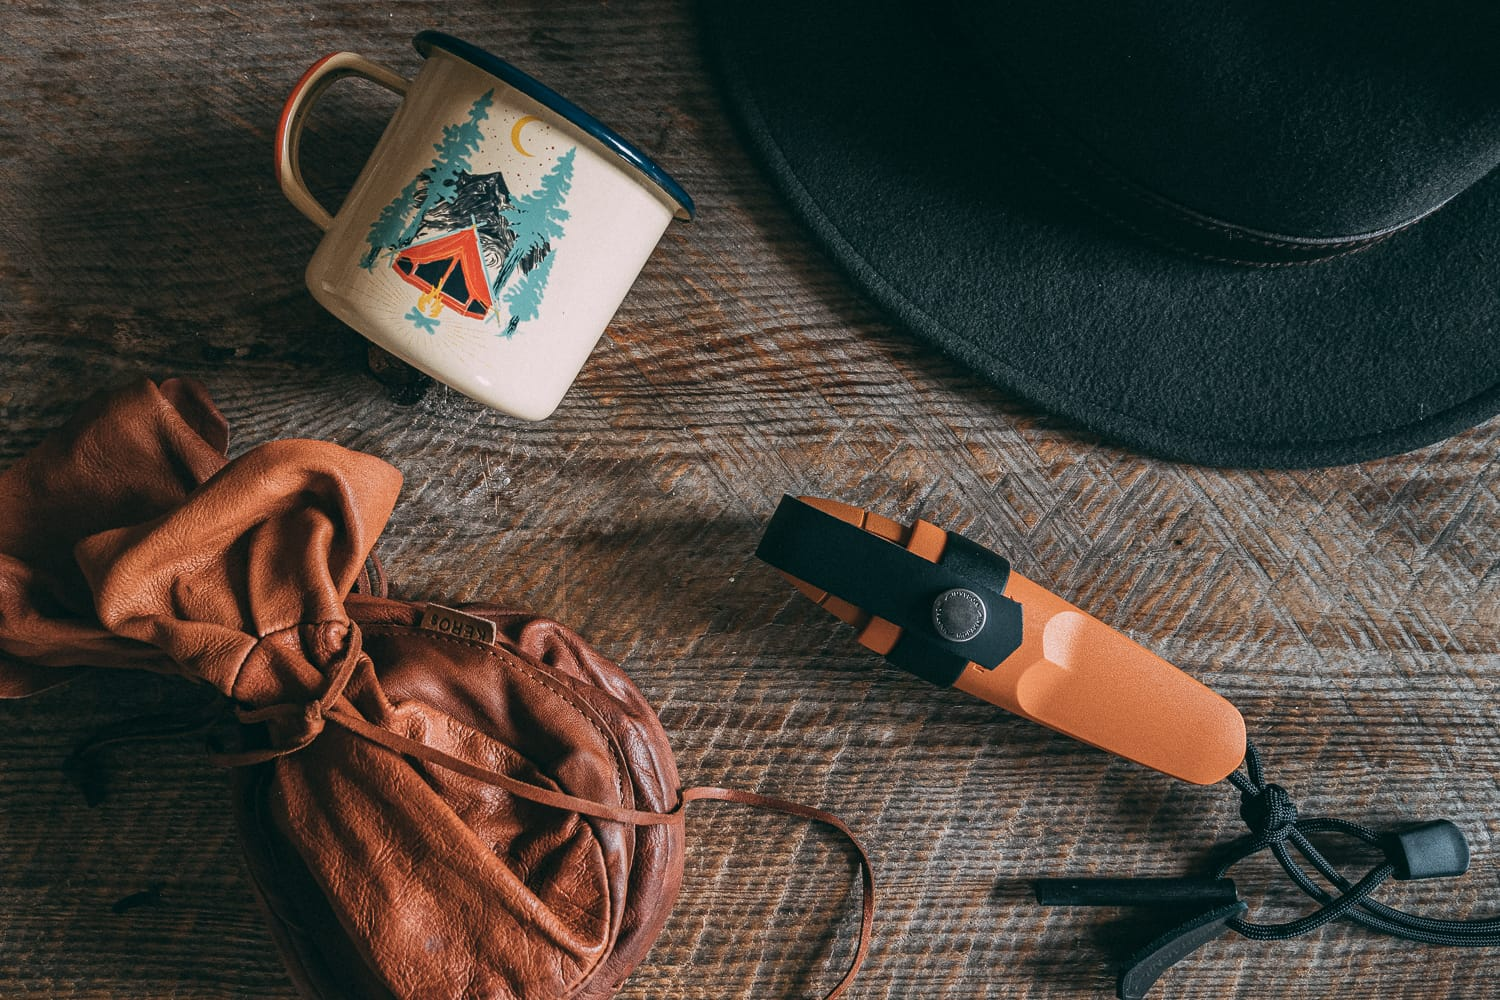 coffee, enamel cup, knife and hat